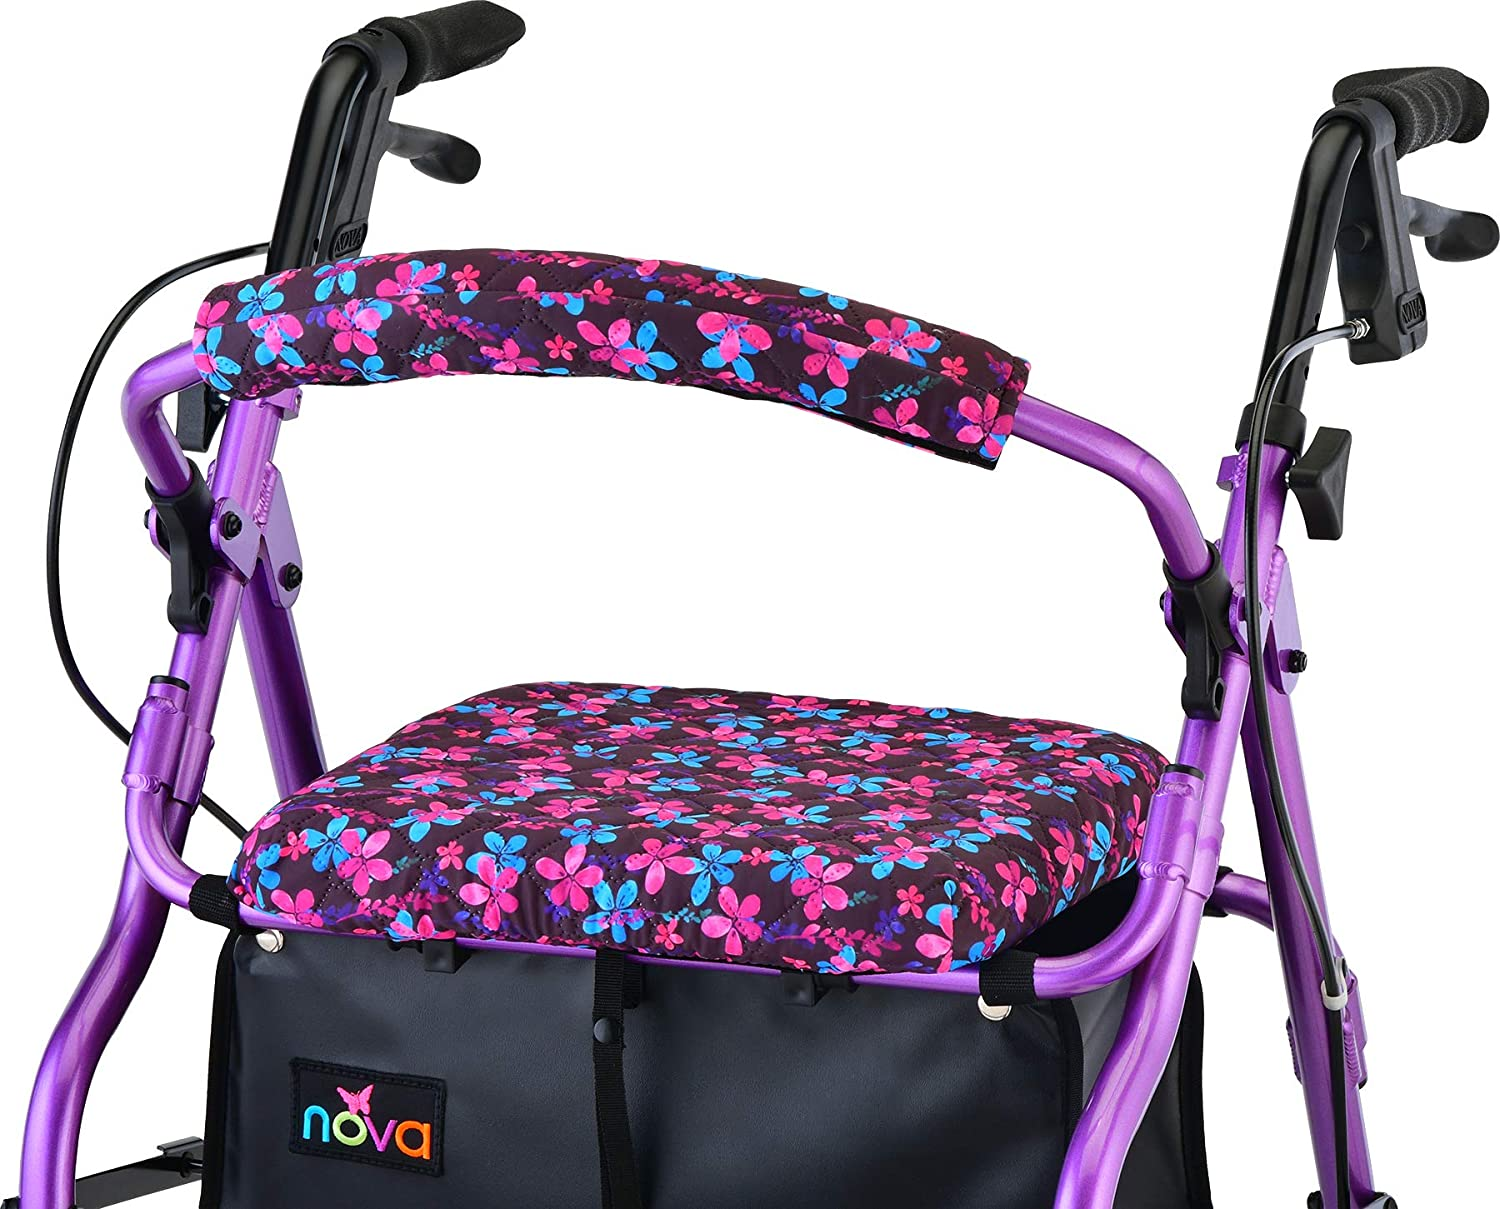 NOVA Medical Products Rollator Walker Seat & Back Cover, Removable & Washable, Garden Flowers